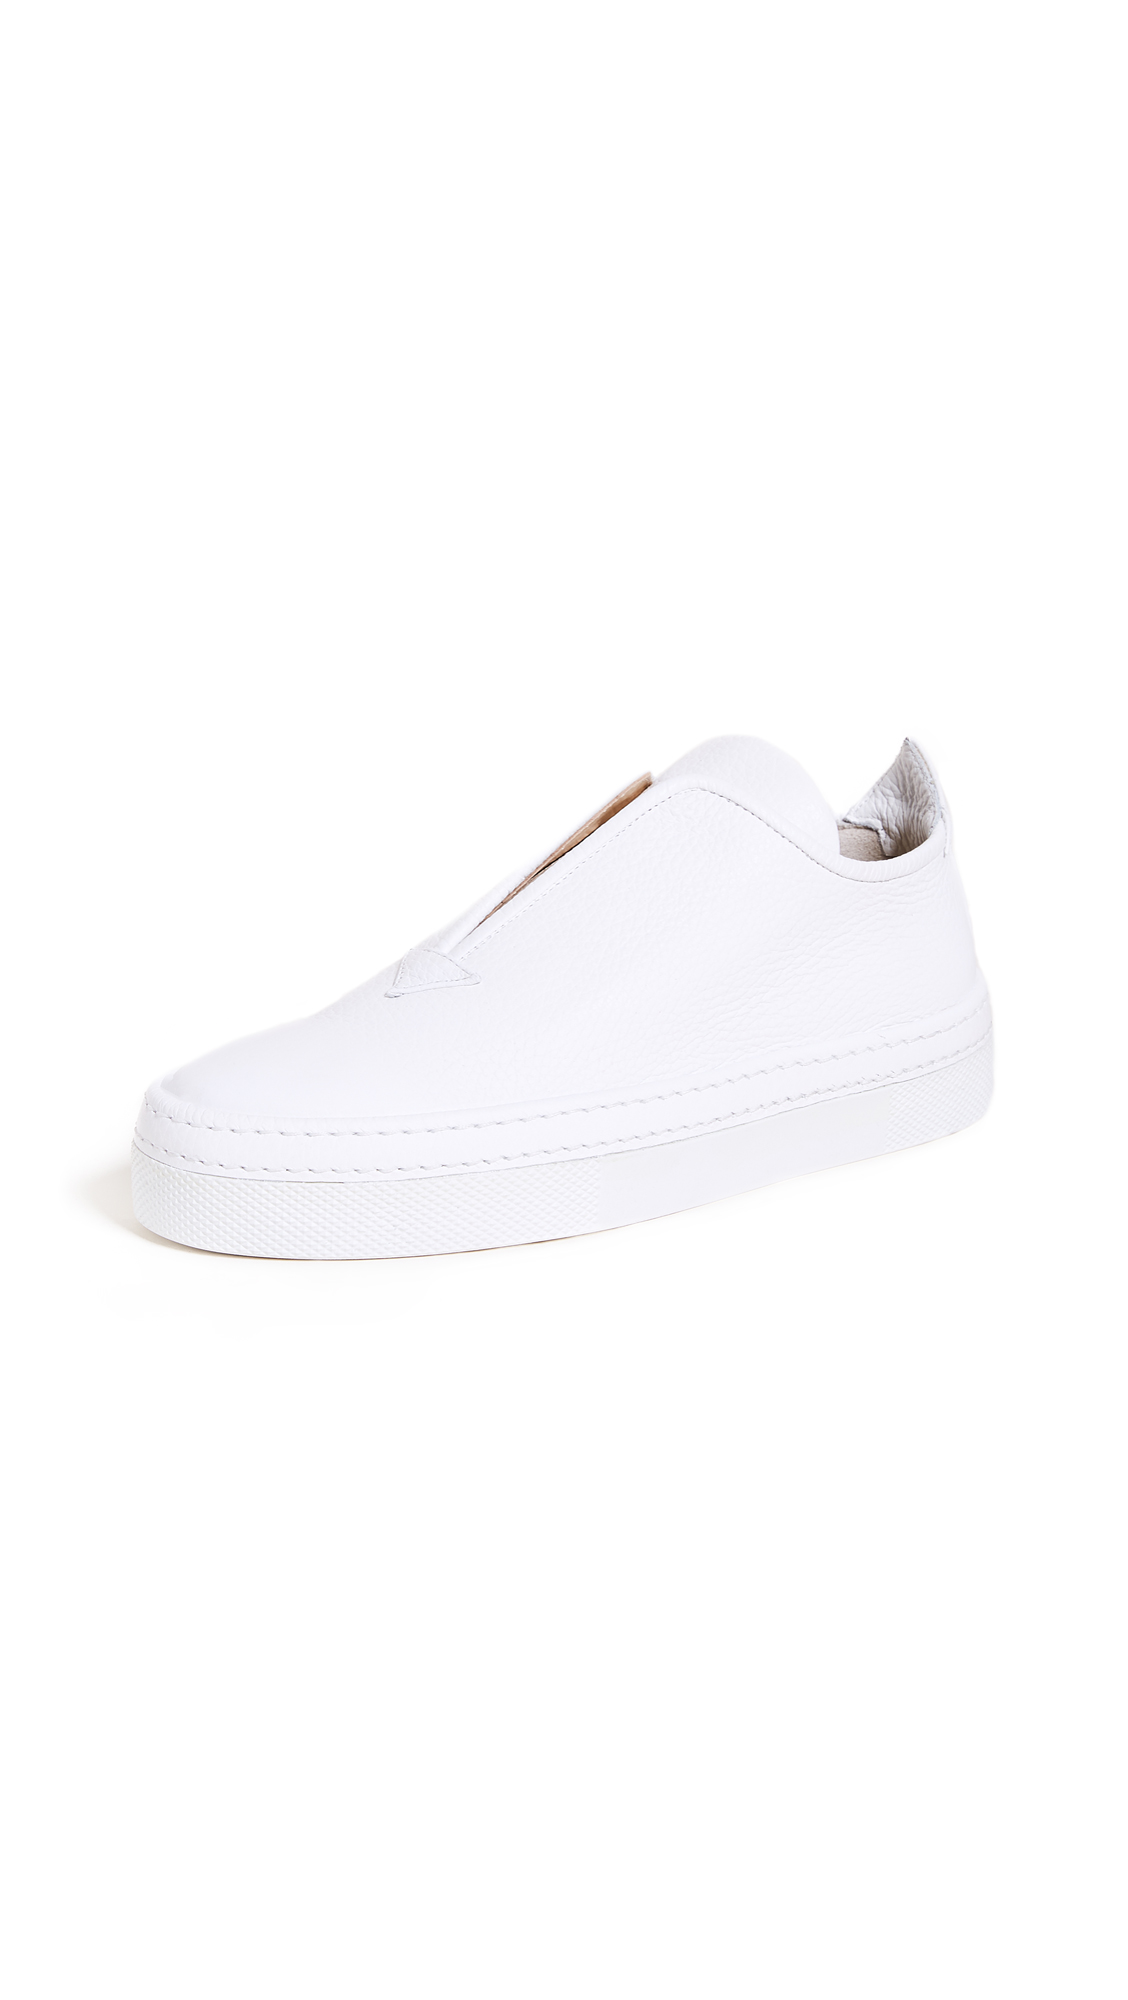 Steiger Slip On Sneakers - Bianco